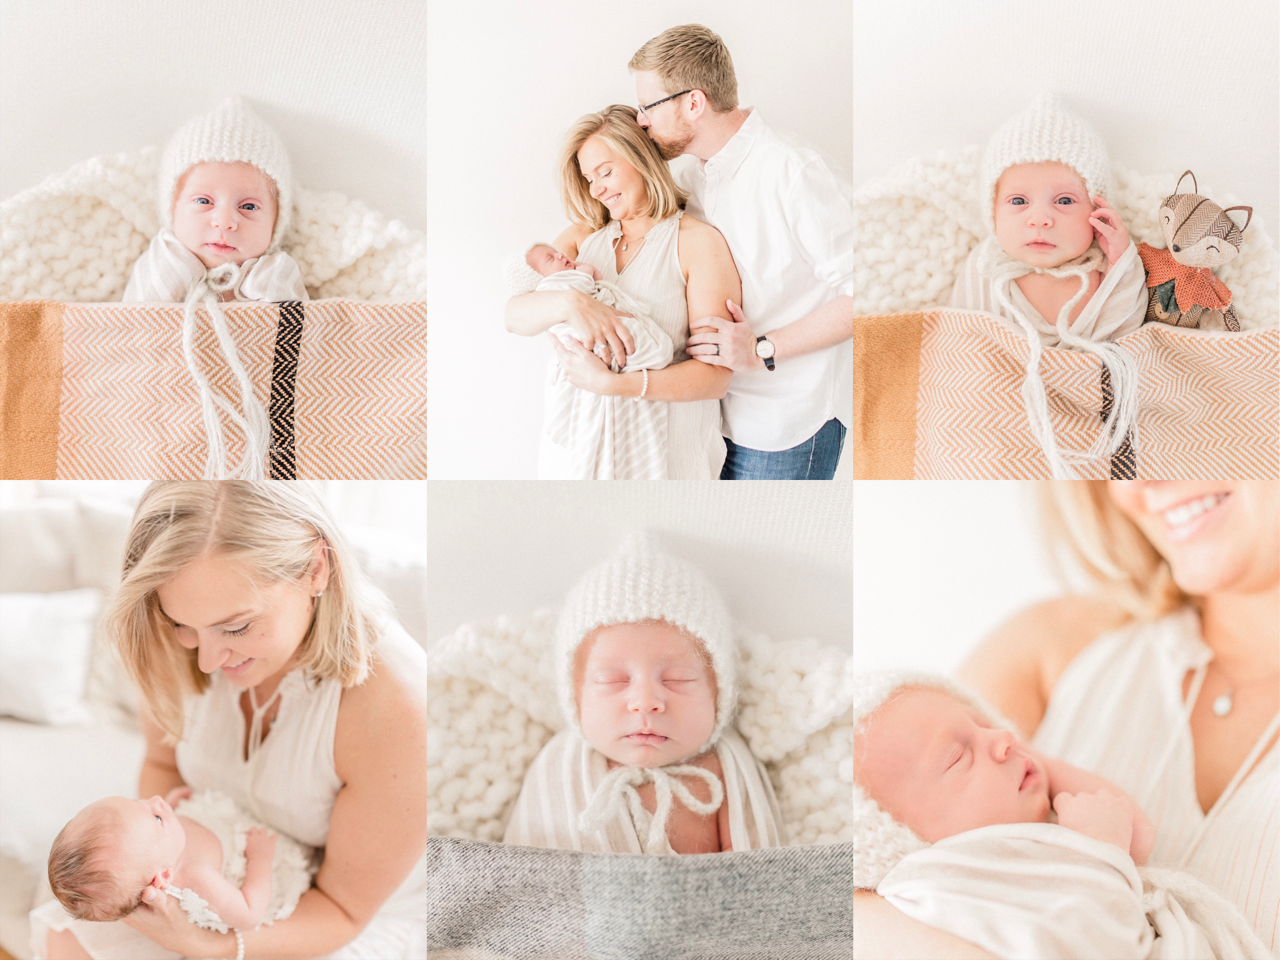 Emilia | Creamy and Cozy Fall Themed Newborn Photography Session | Natural Light Photographer in Noblesville, IN